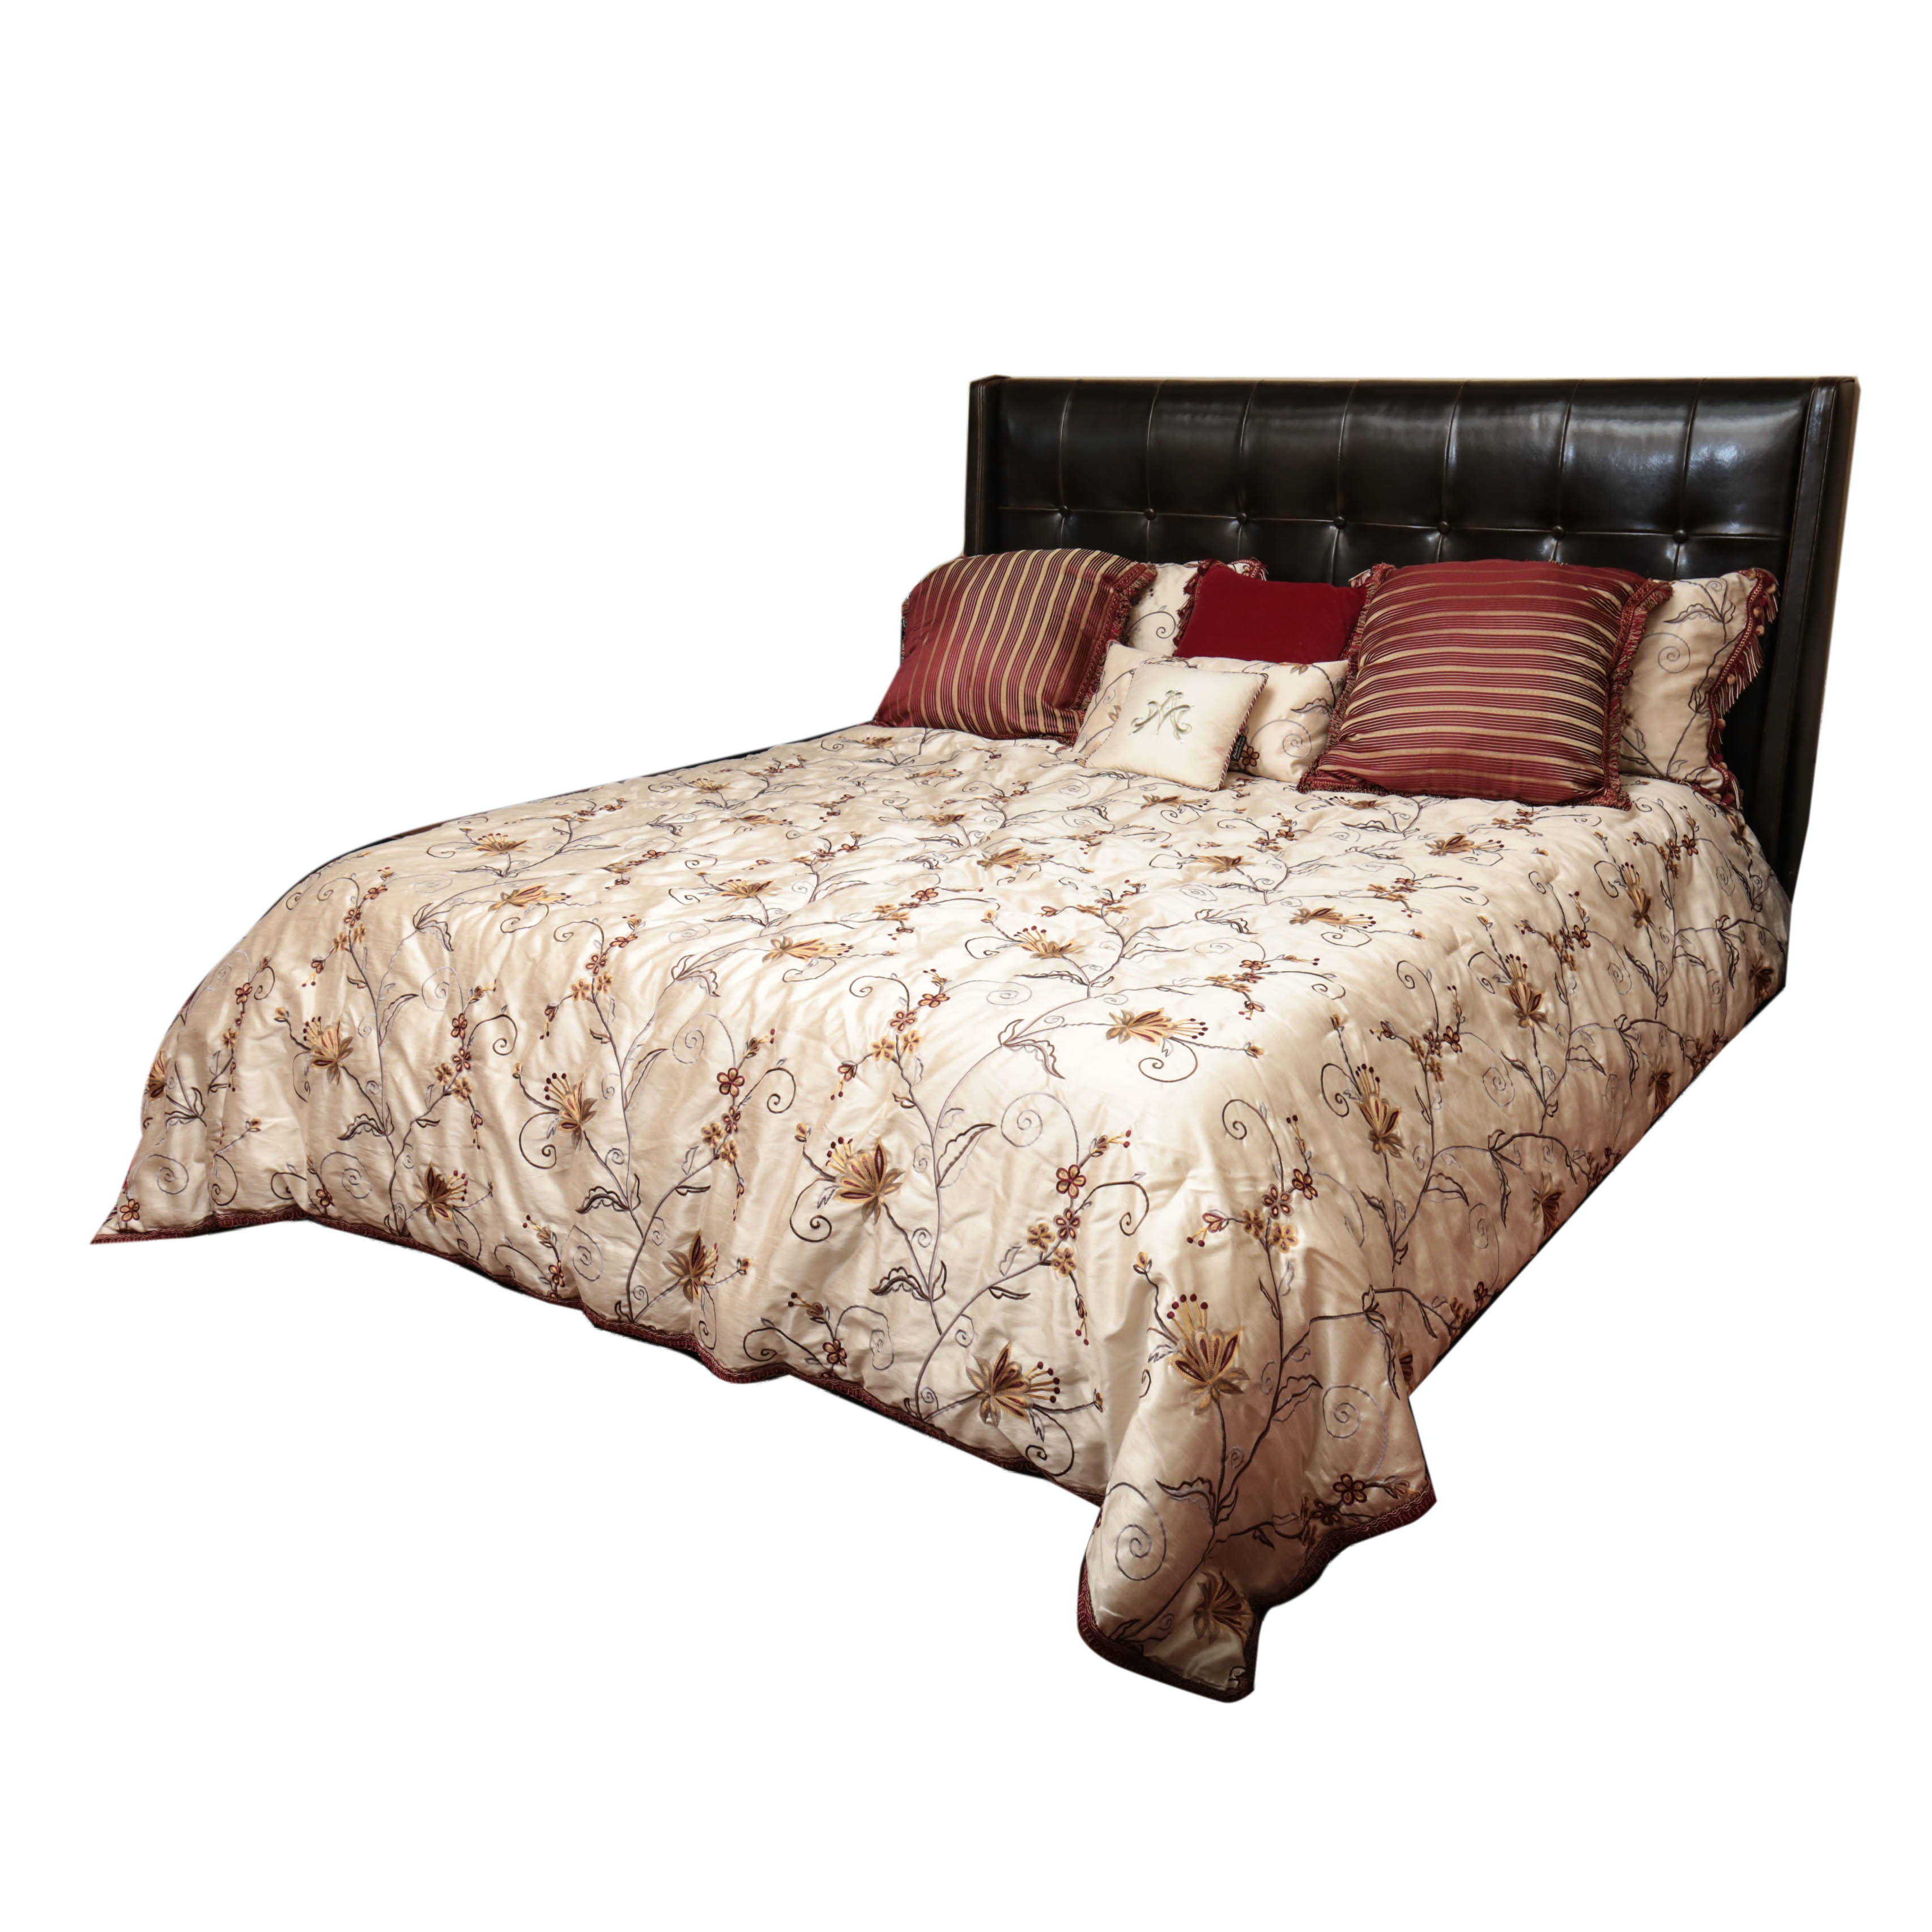 King Size Leather Platform Bed with Bedding